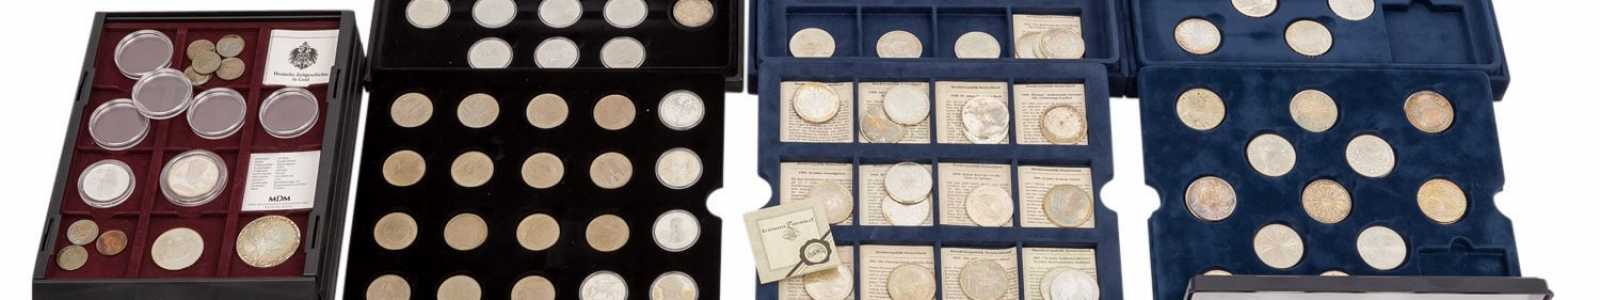 Coins, medals, stamps, historics